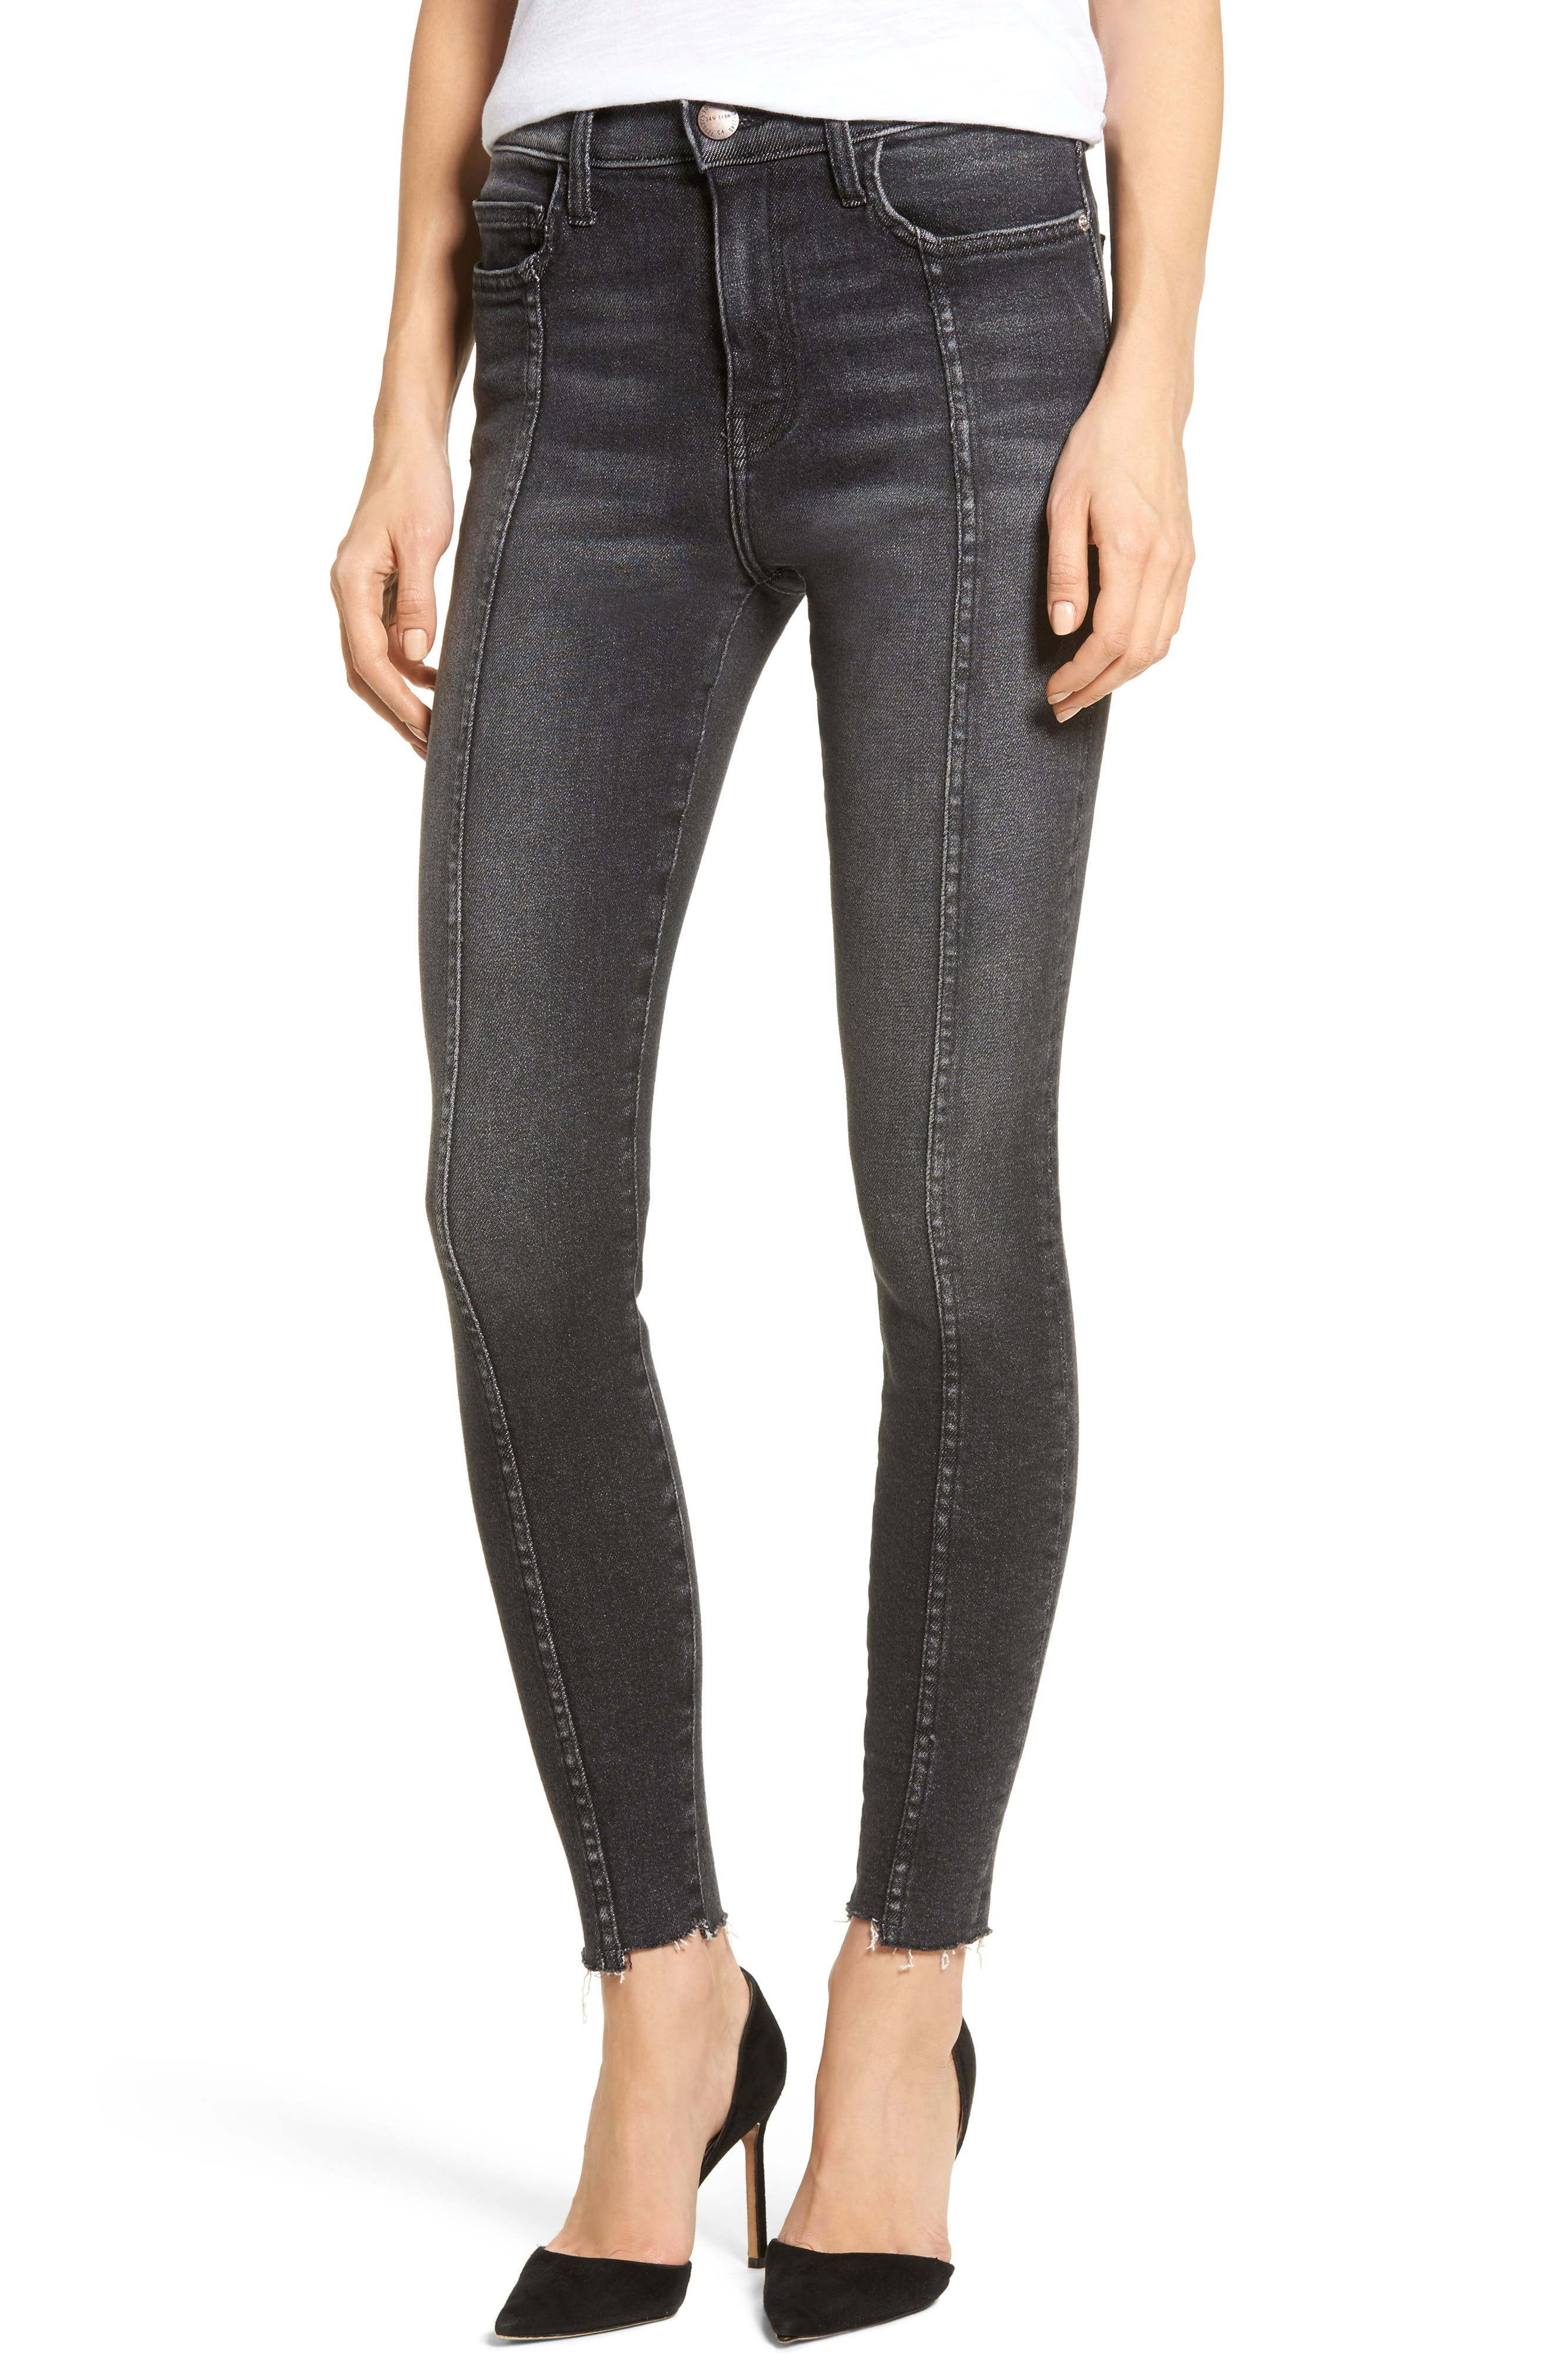 The Ultra High Waist Ankle Skinny Jeans,                             Main thumbnail 1, color,                             007